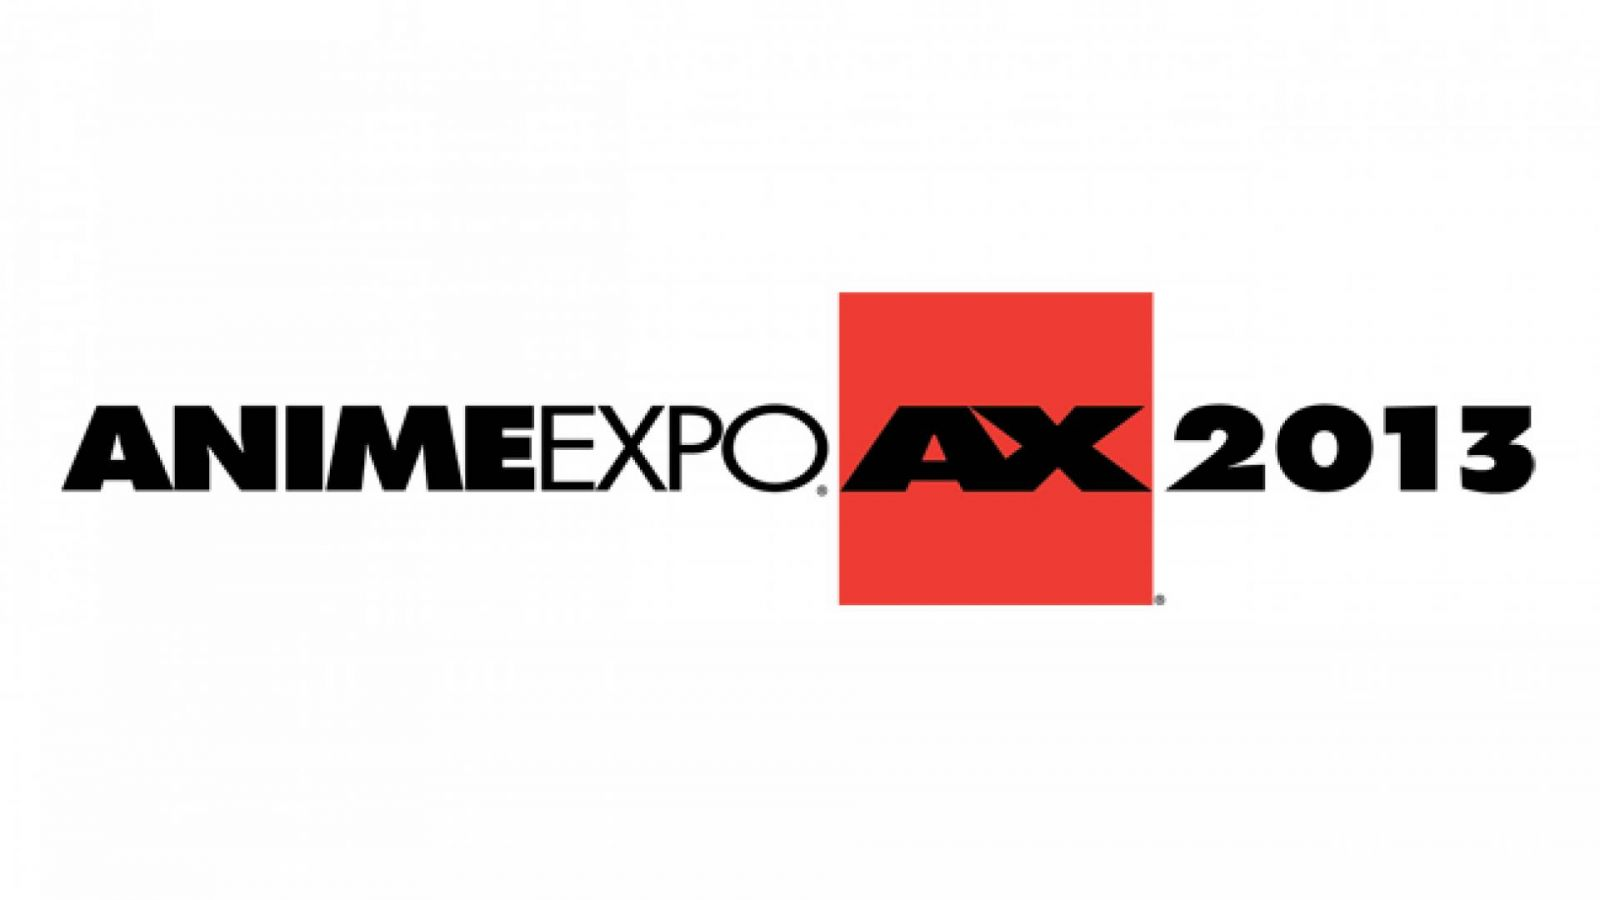 Visual Kei Fans Speak out at Anime Expo 2013 © Anime Expo